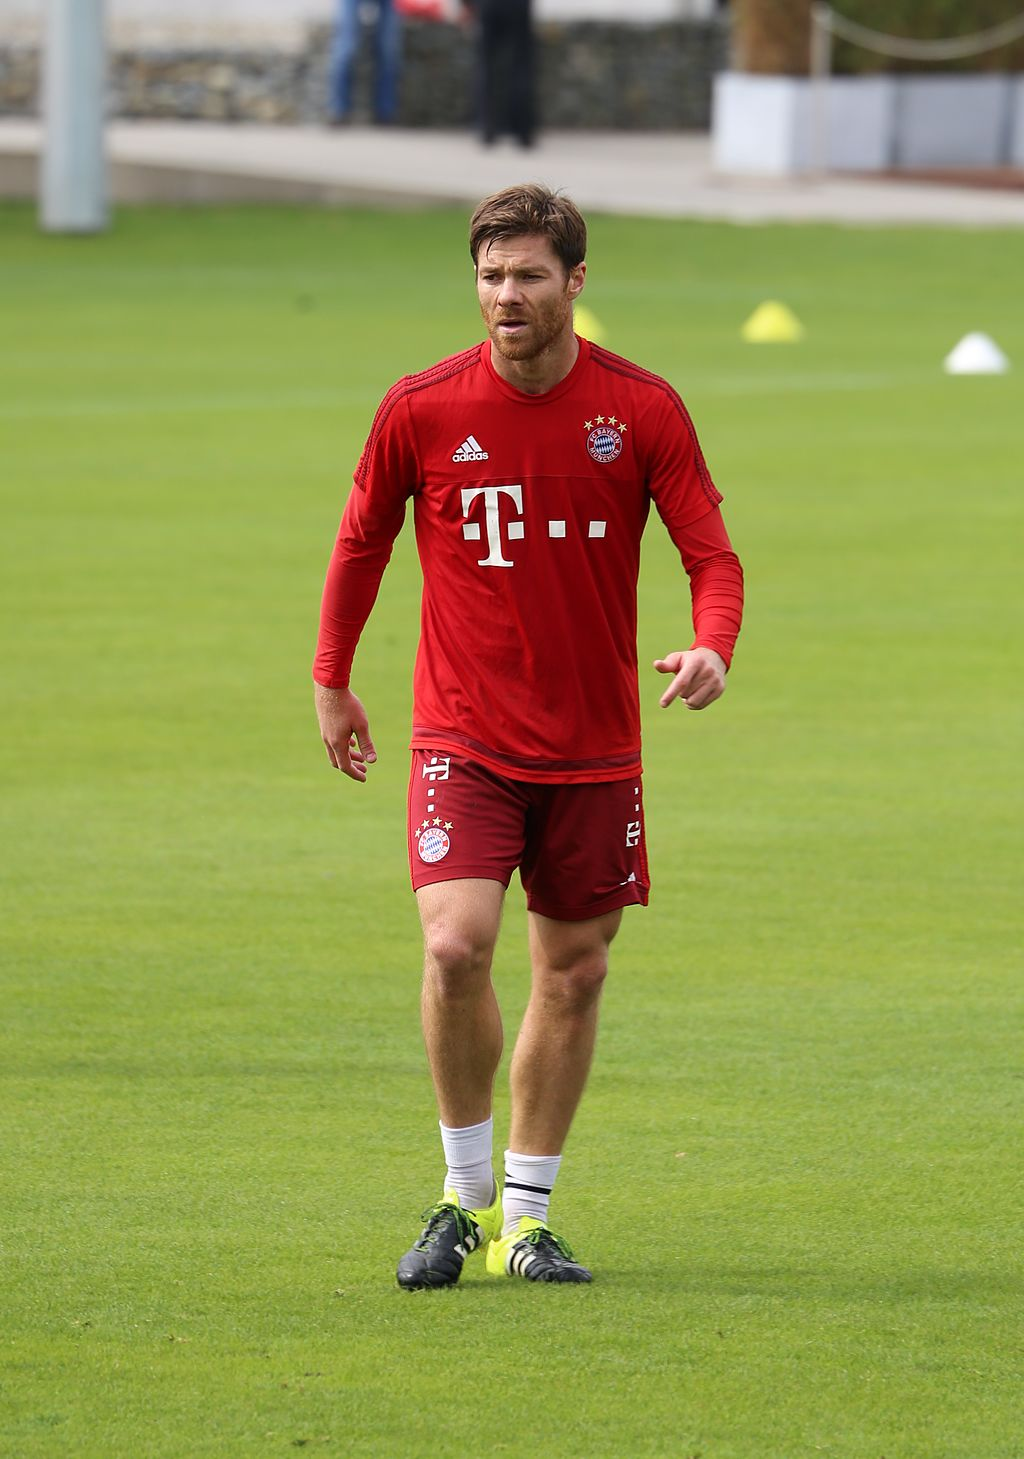 Xabi Alonso taille | By Rufus46 [CC BY-SA 3.0  (https://creativecommons.org/licenses/by-sa/3.0)], from Wikimedia Commons